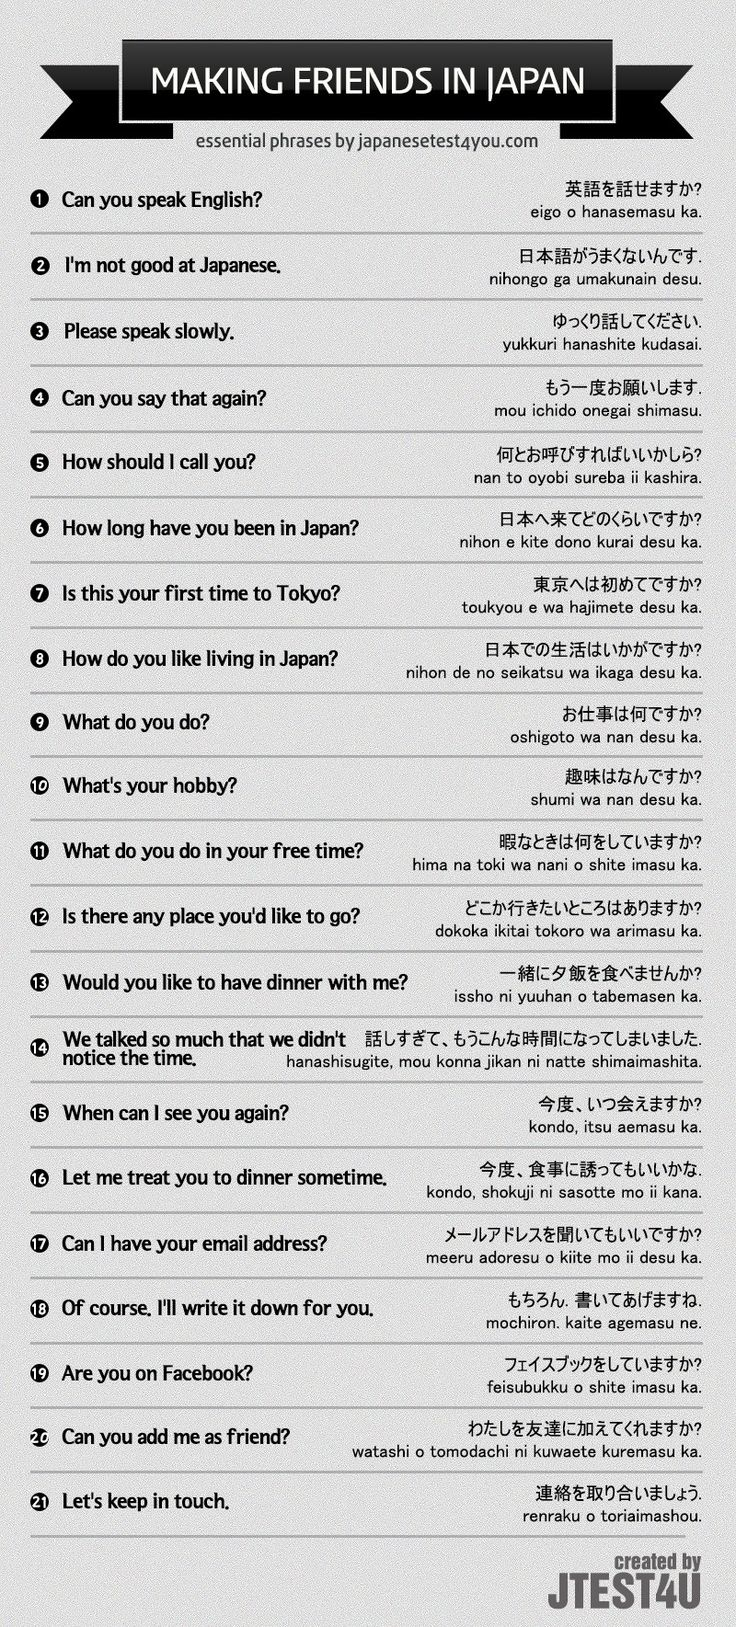 Find This Pin And More On Language Learning Japanese Vocabulary  Making Friends  In Japan